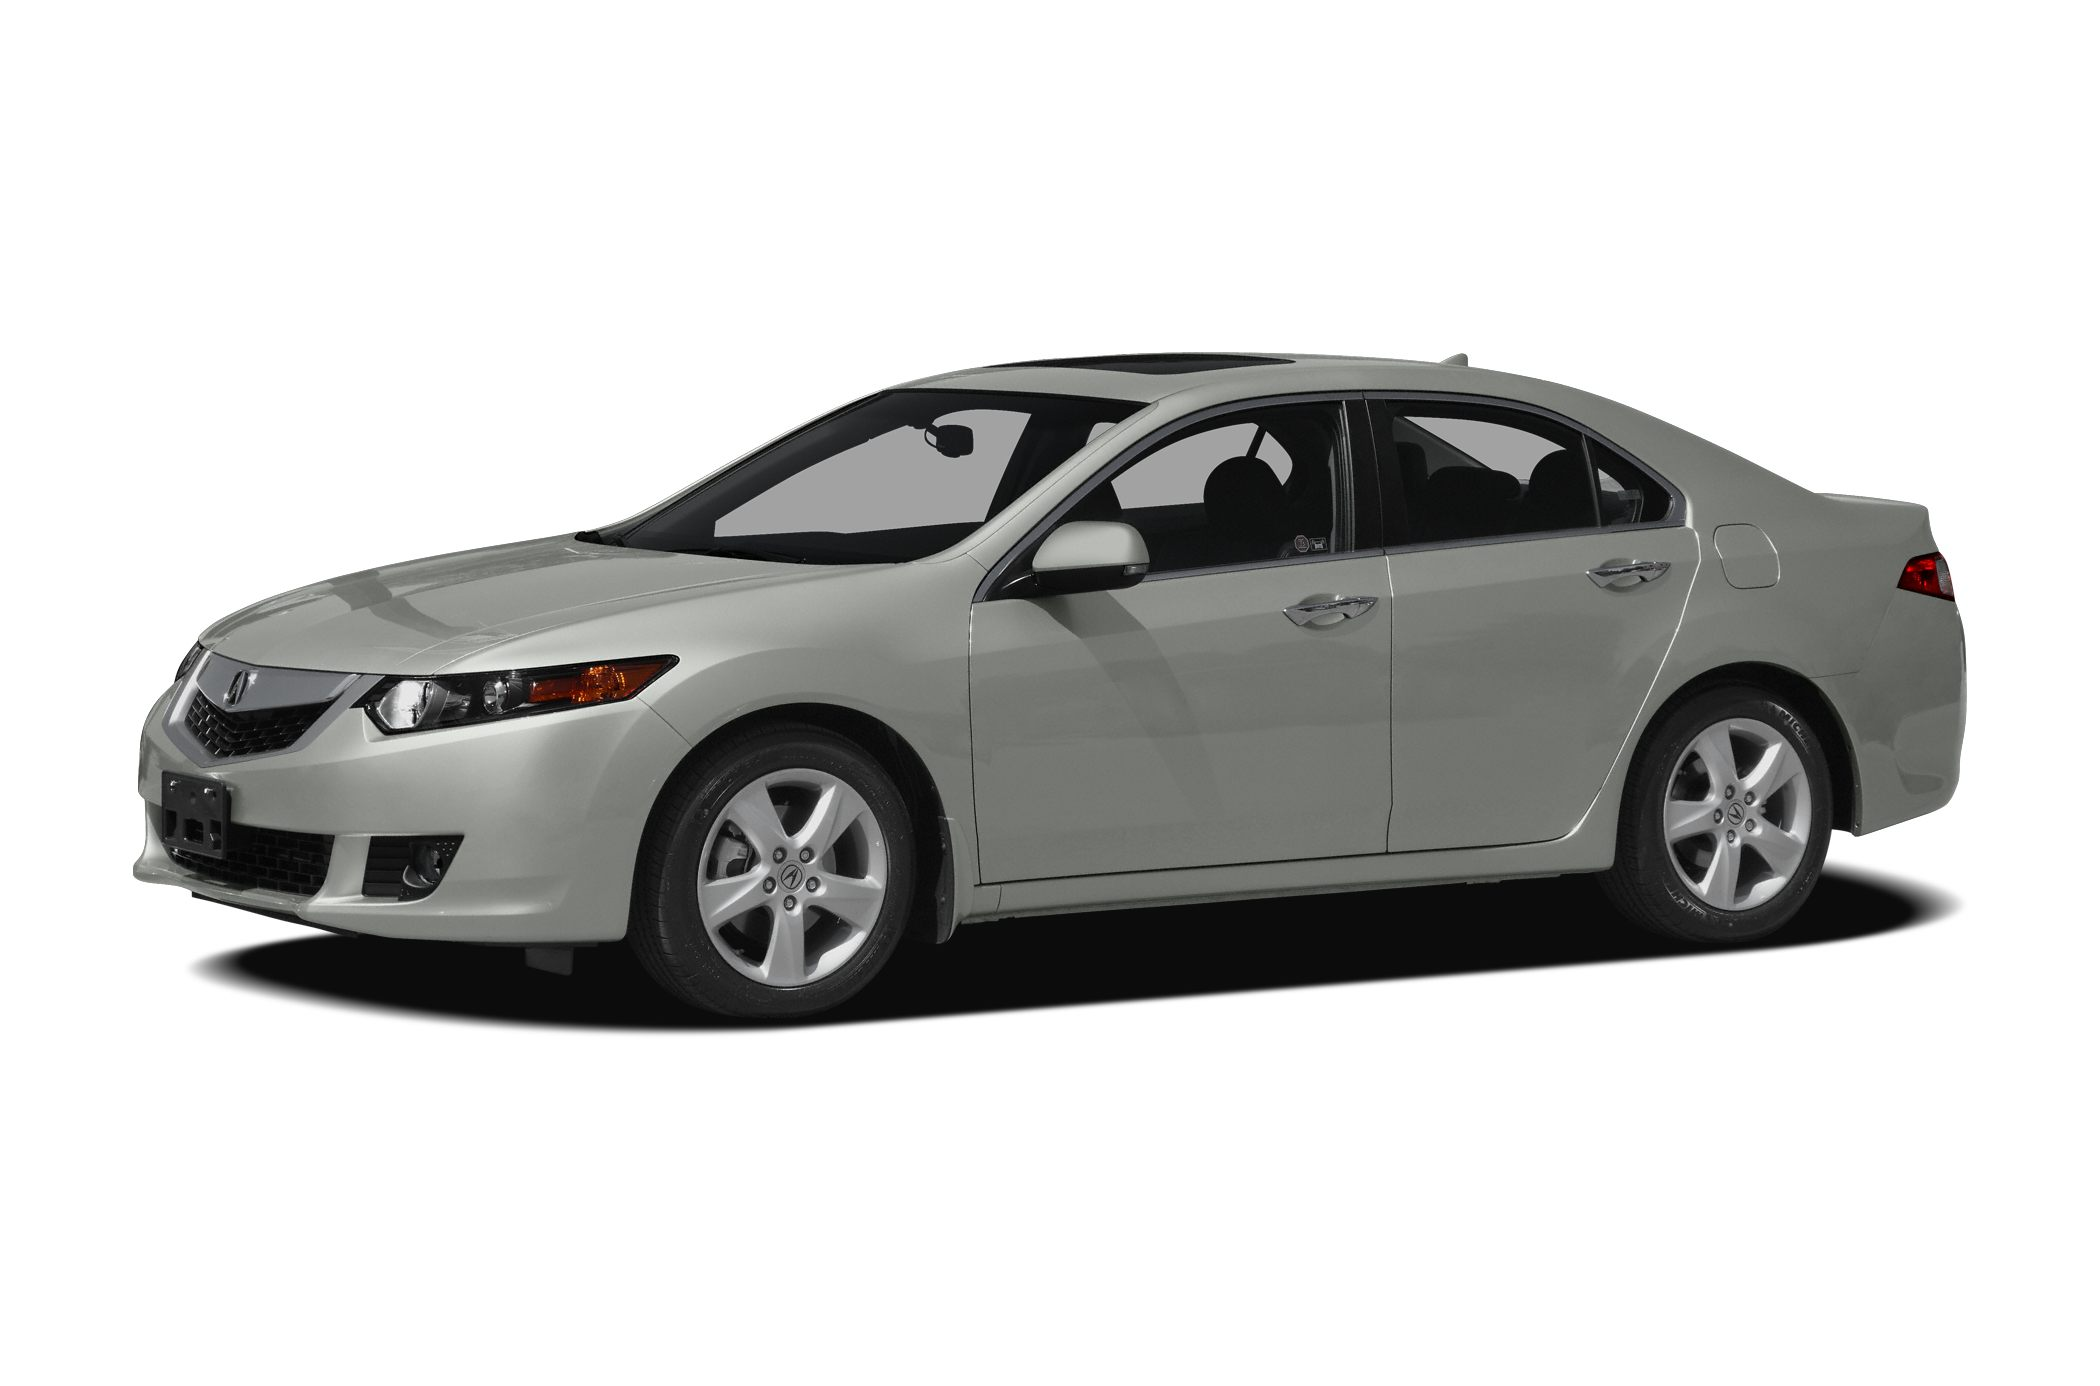 2010 Acura TSX